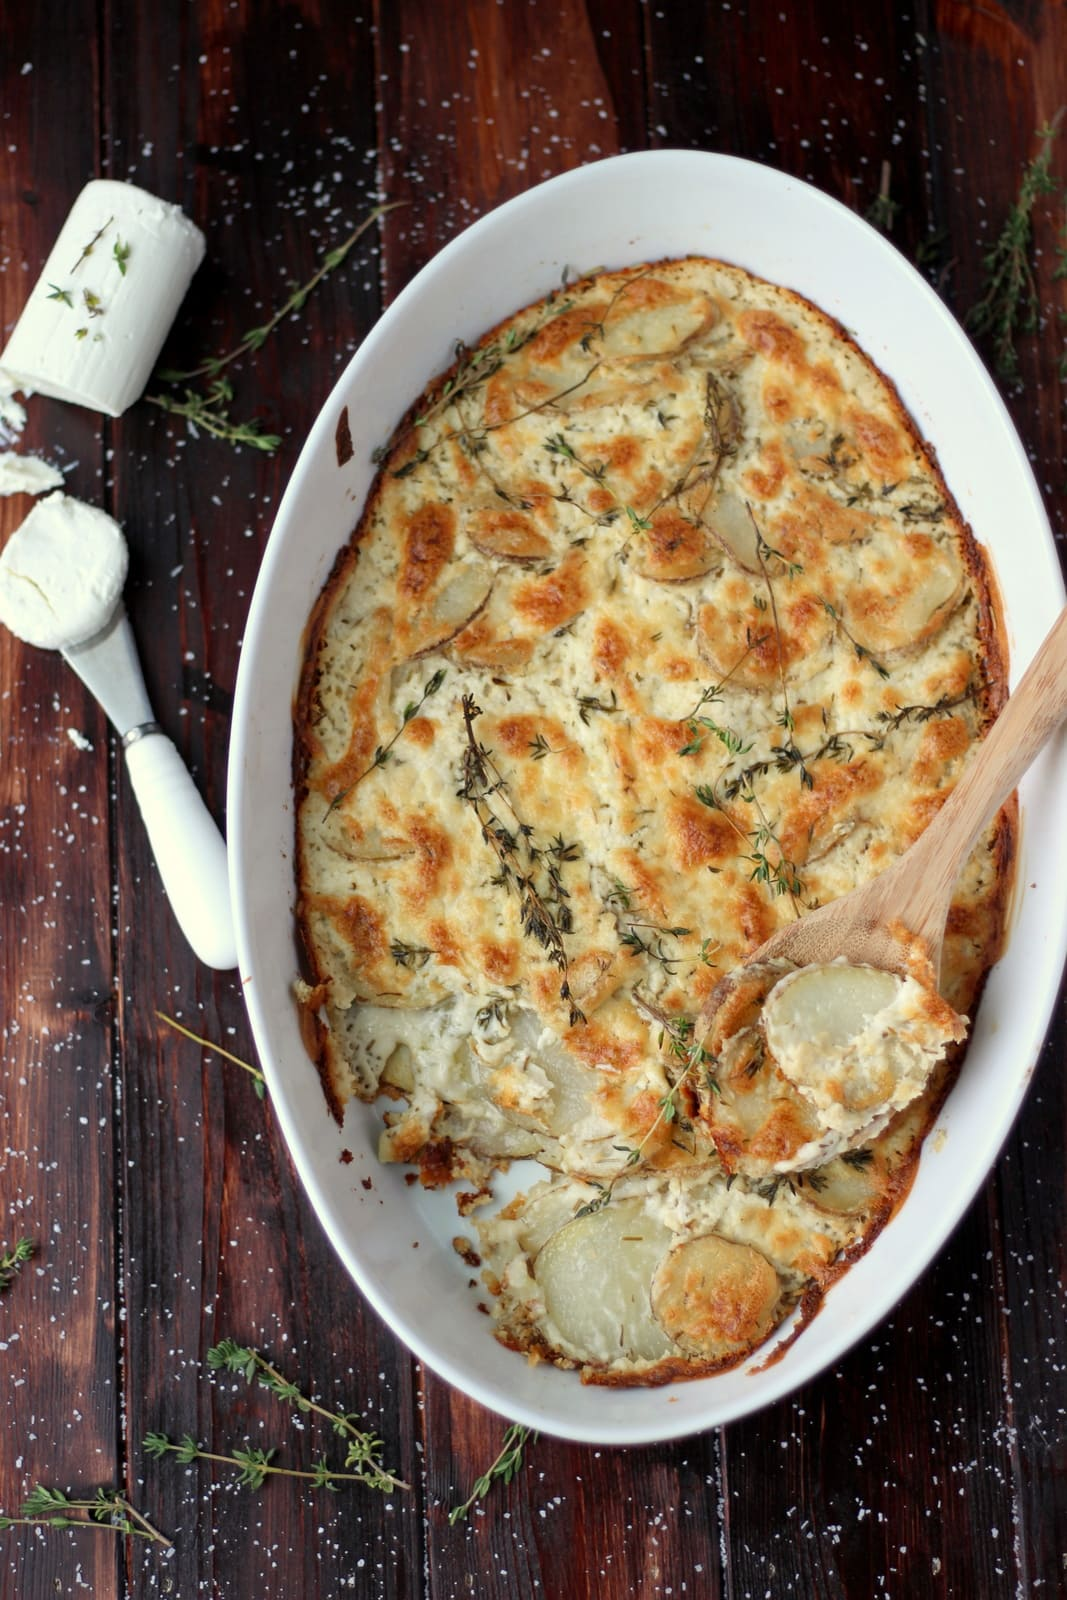 Goat Cheese Au Gratin Potatoes + Browned Butter and Fresh Thyme - perfect side dish recipe for Thanksgiving or any meal! thewoodenskillet.com #foodphotography #foodstyling